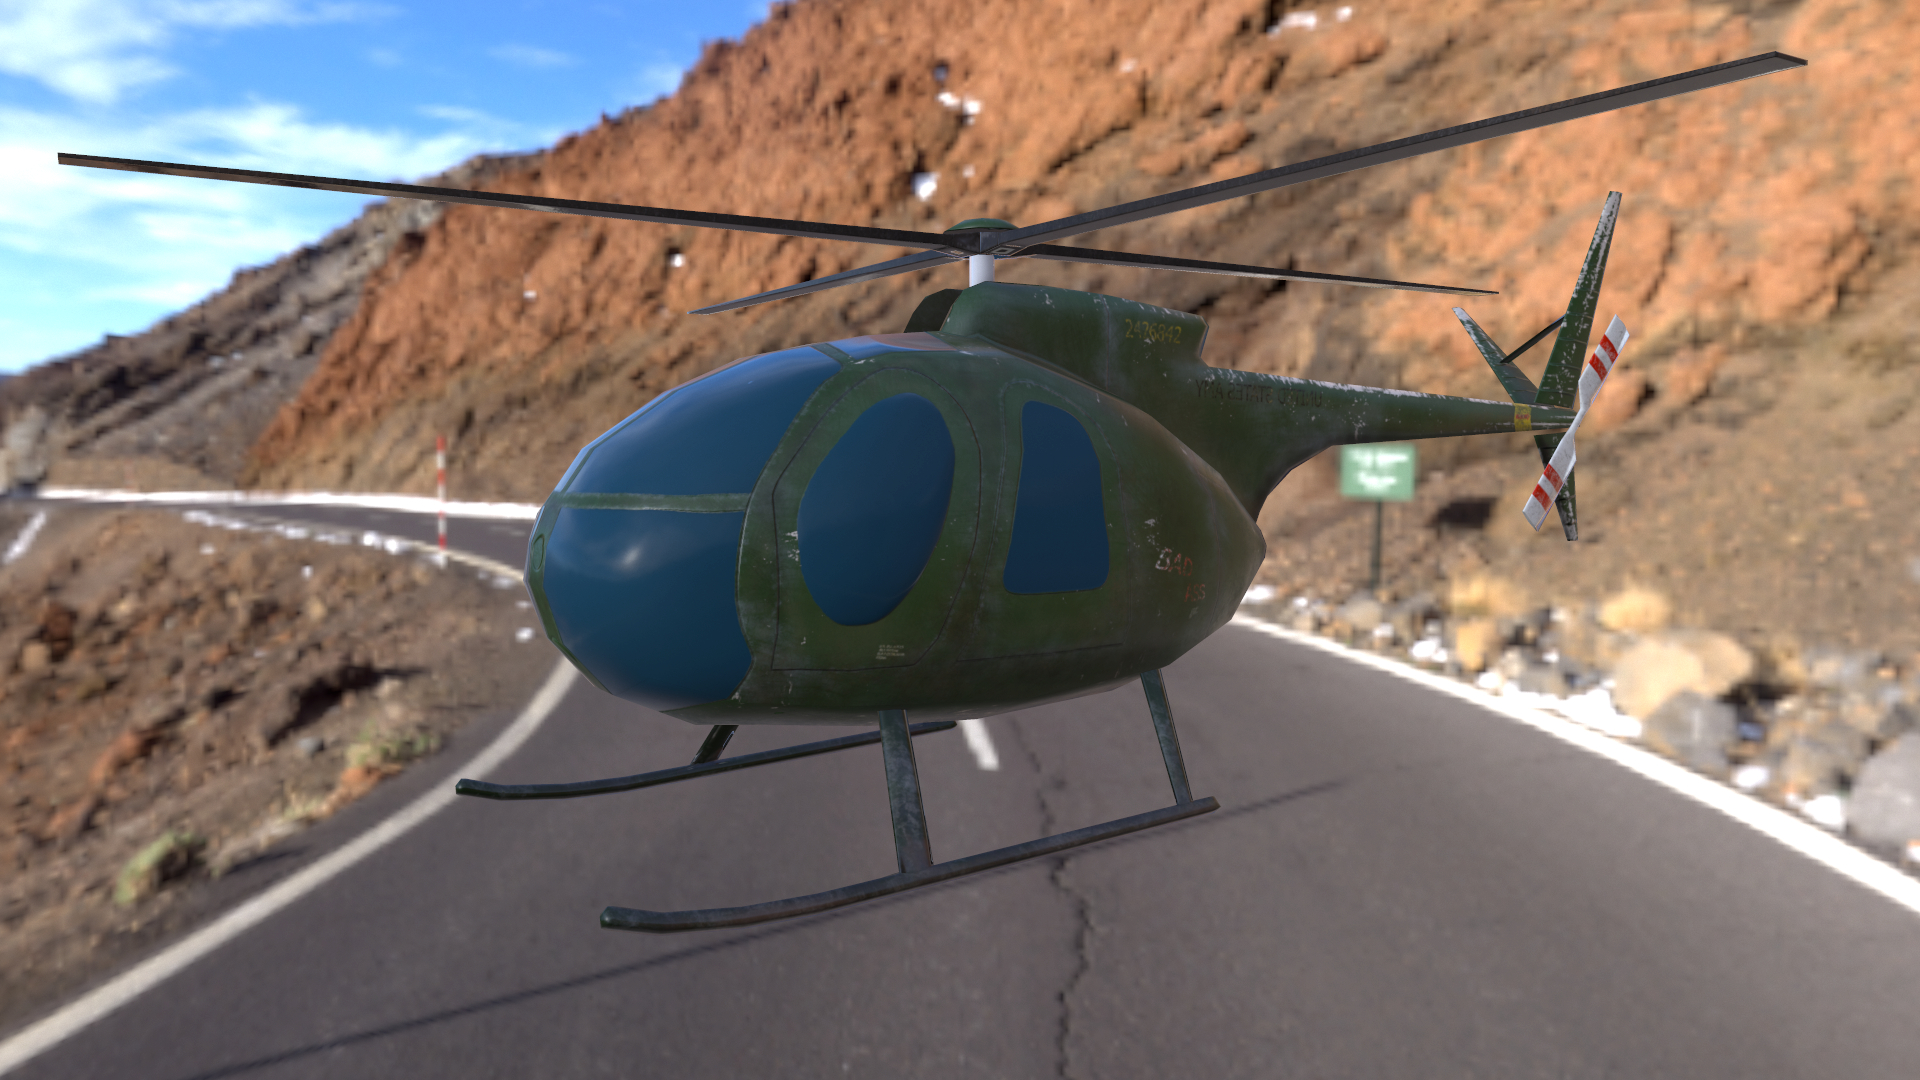 lowpoly modello di elicottero Hughes OH-6 Cayuse app mobile in 3d max Other immagine